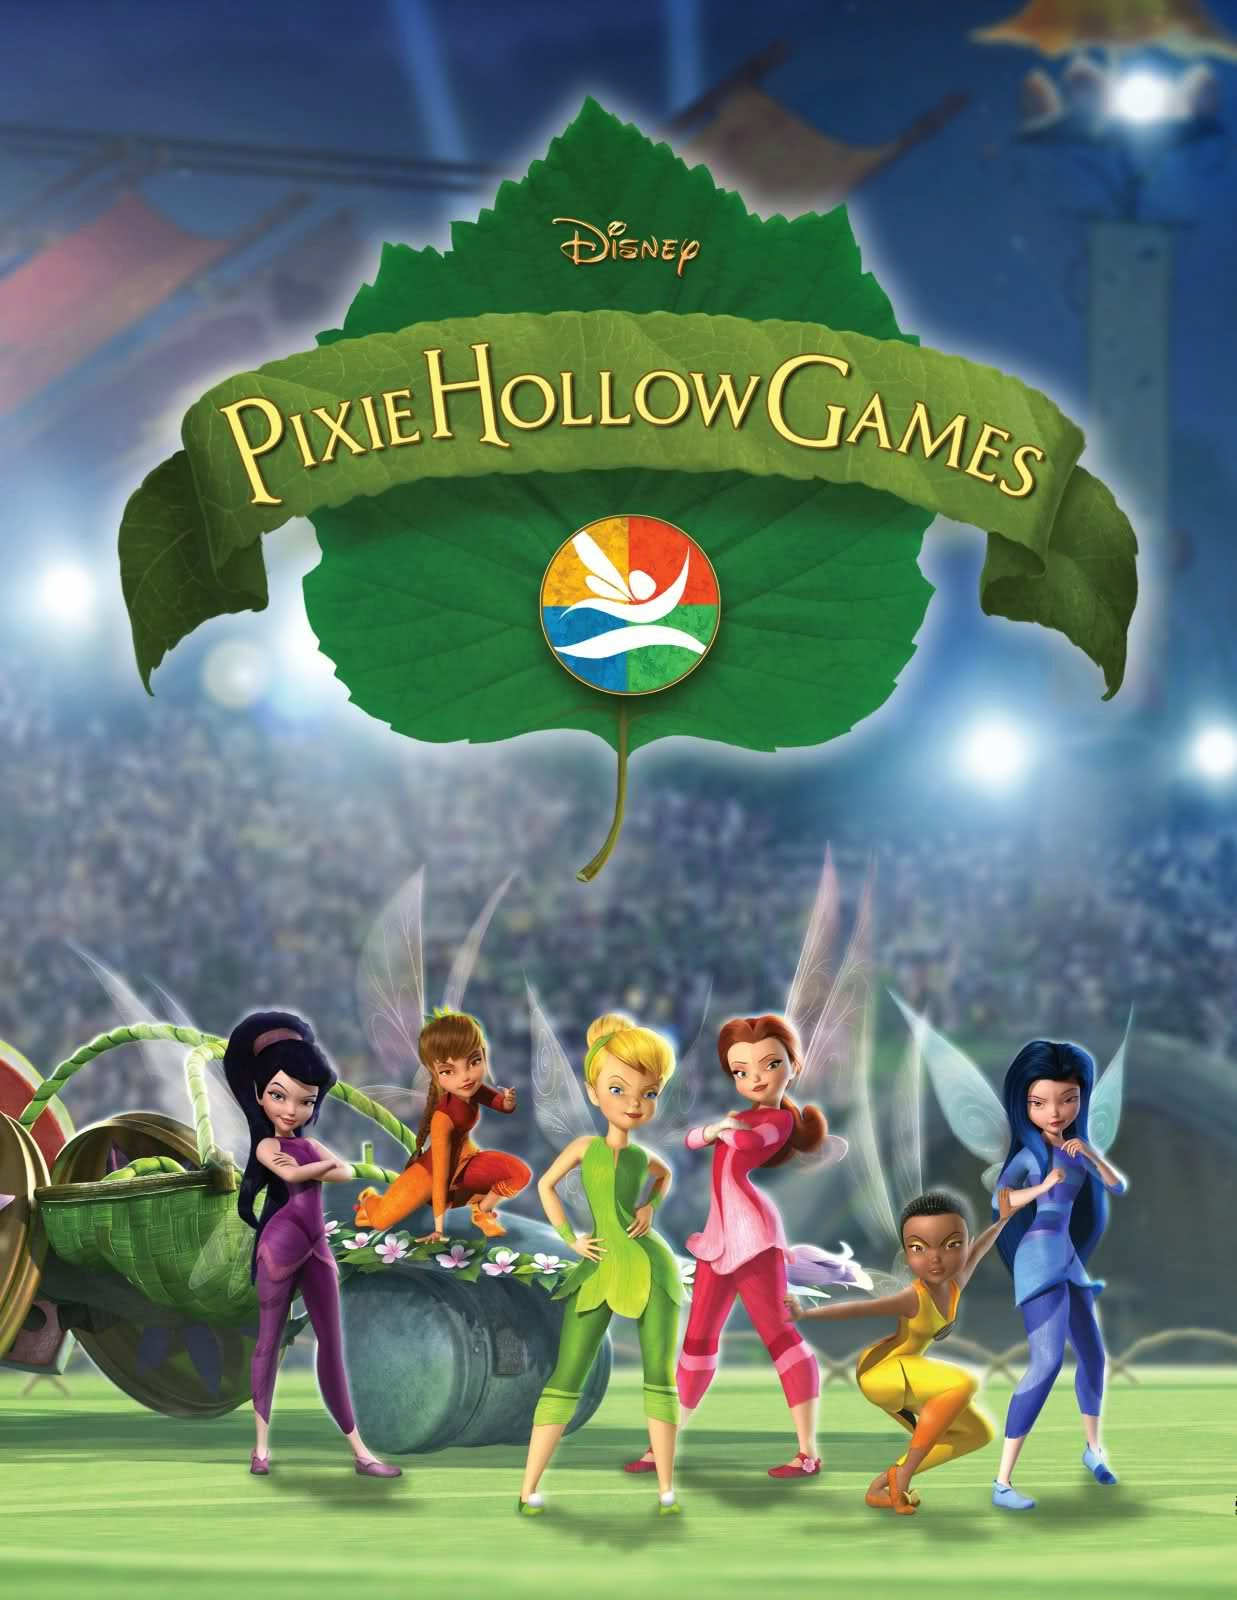 Watch Tinkerbell Pixie Hollow Games (2011) Online For Free Full Movie English Stream